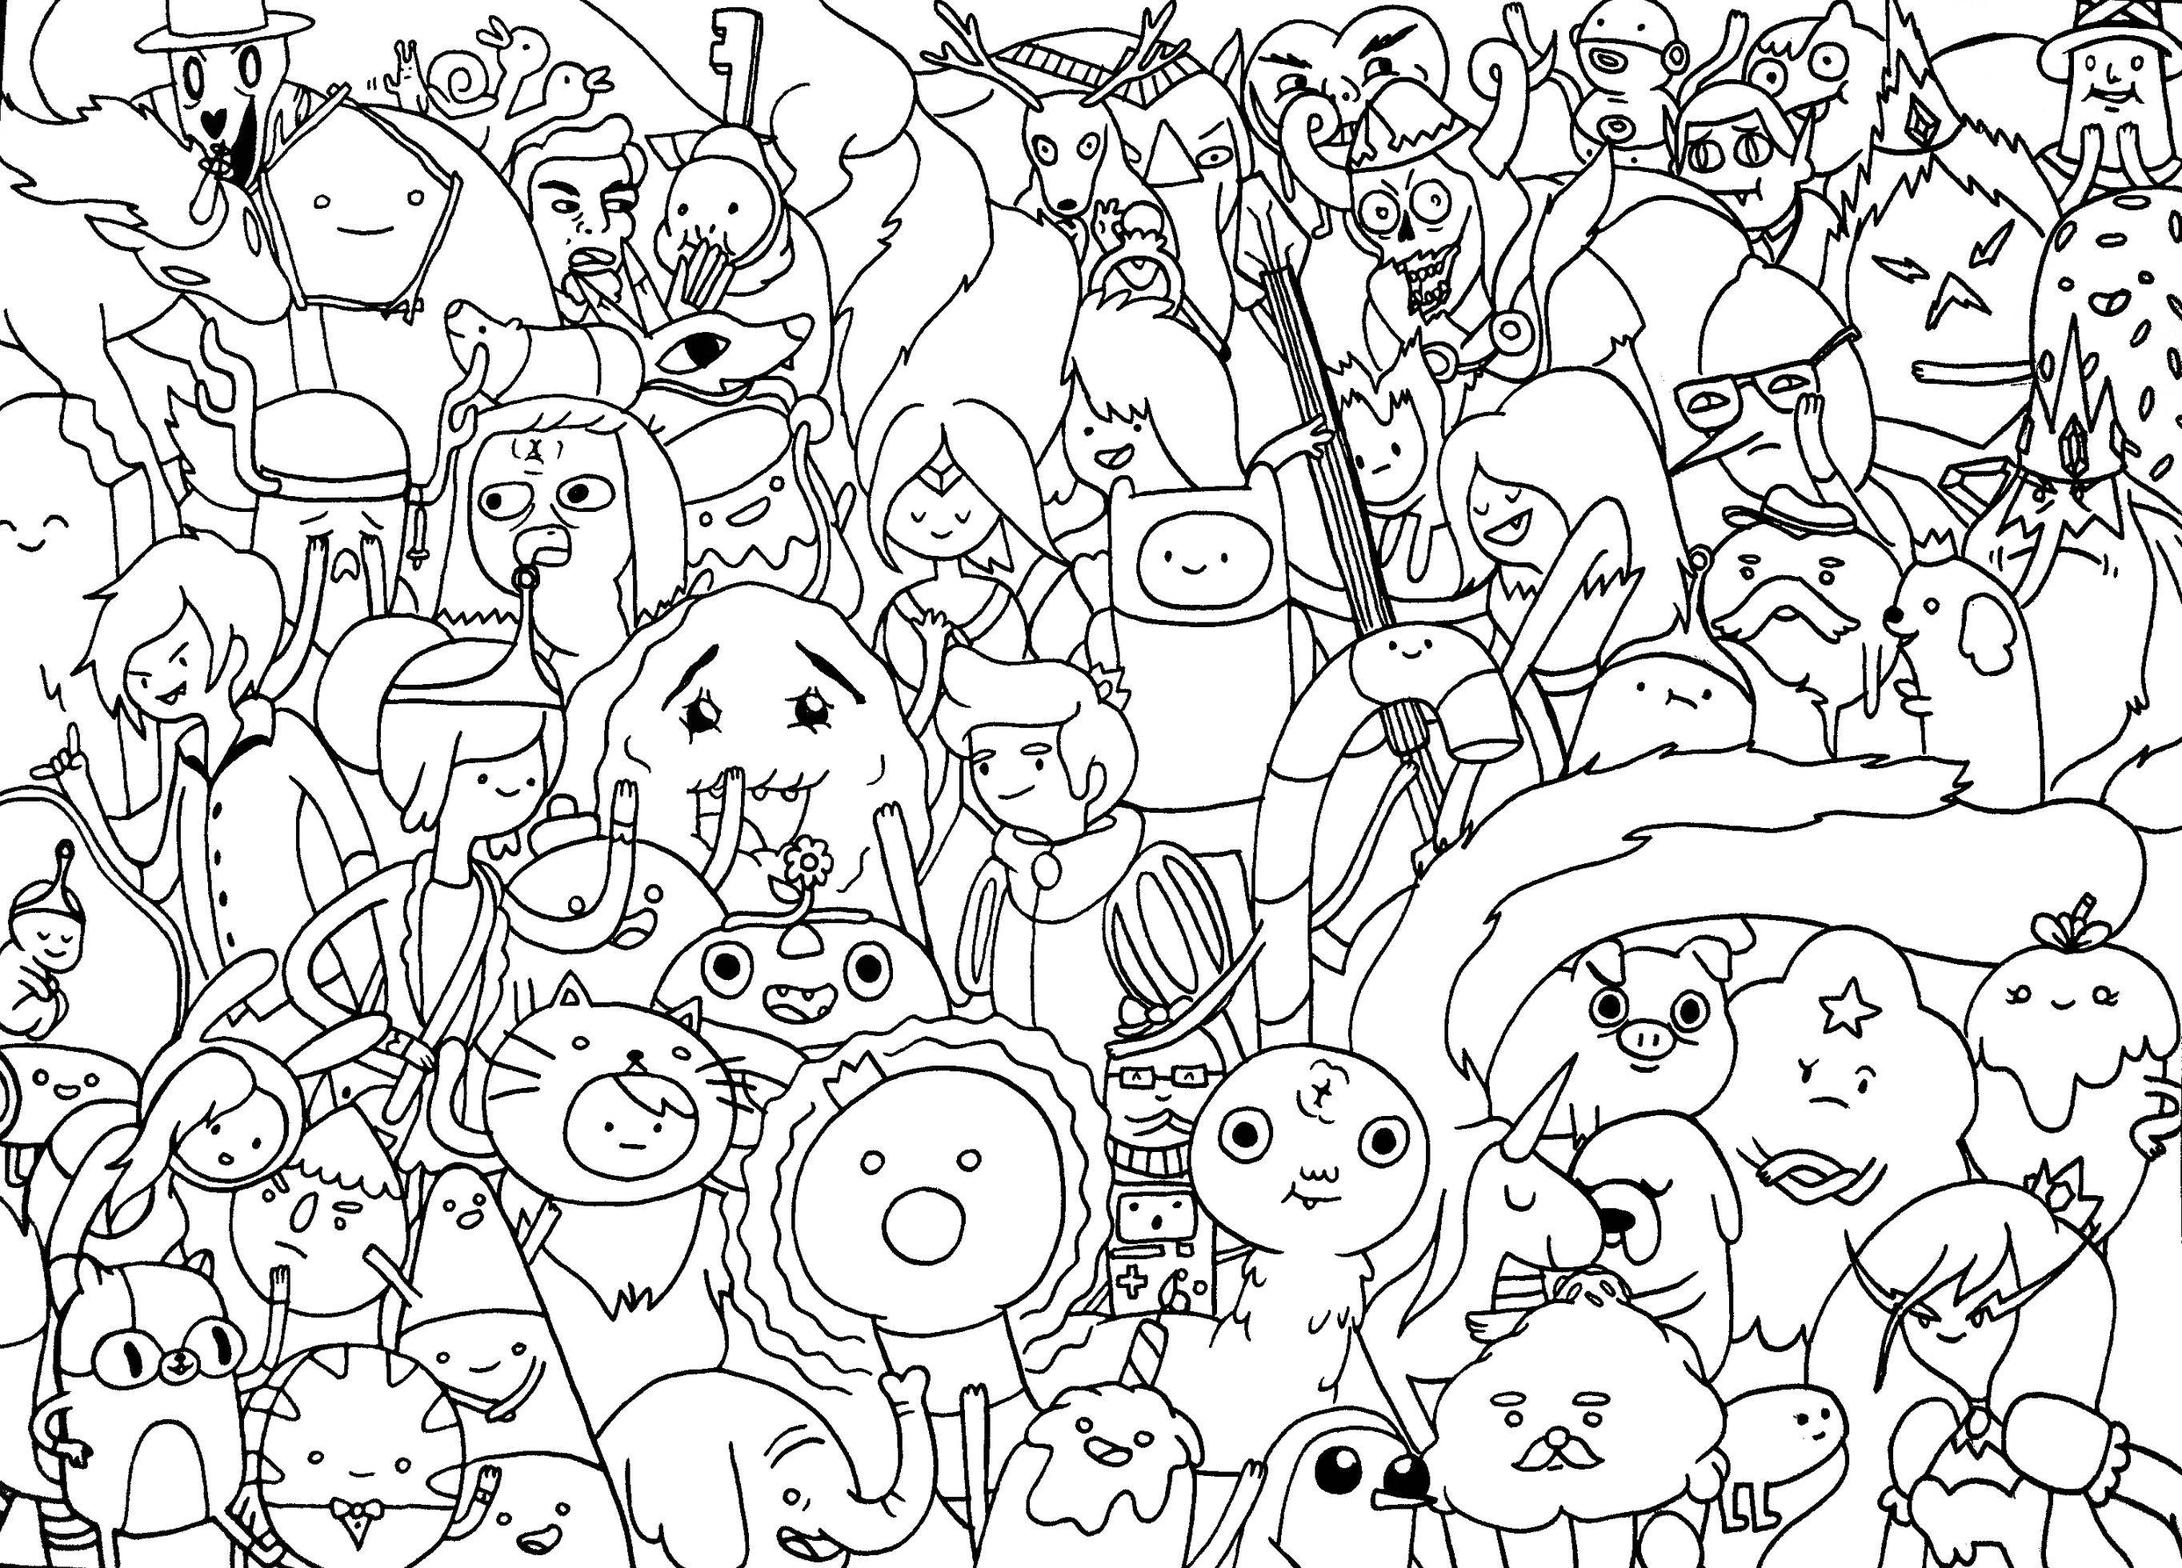 Uncategorized Adventure Time Coloring Pages To Print adventure time coloring pages home pages